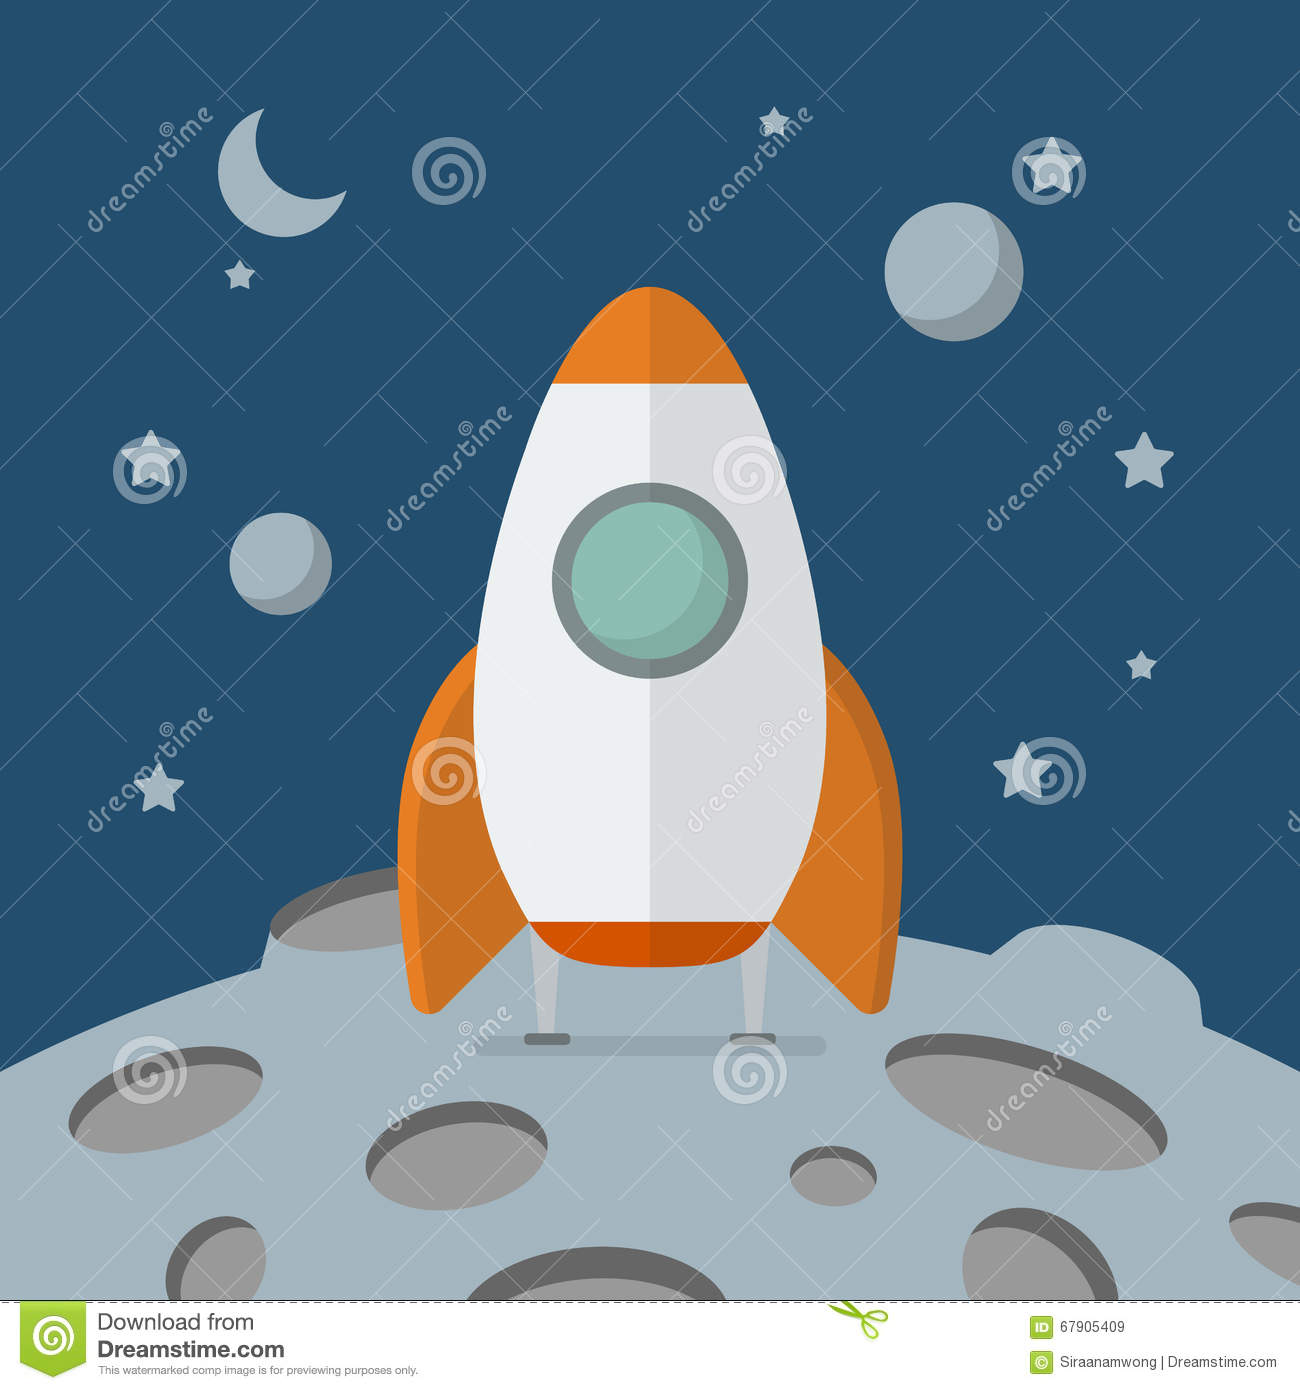 Rocket landed on the moon stock vector. Image of alien ...